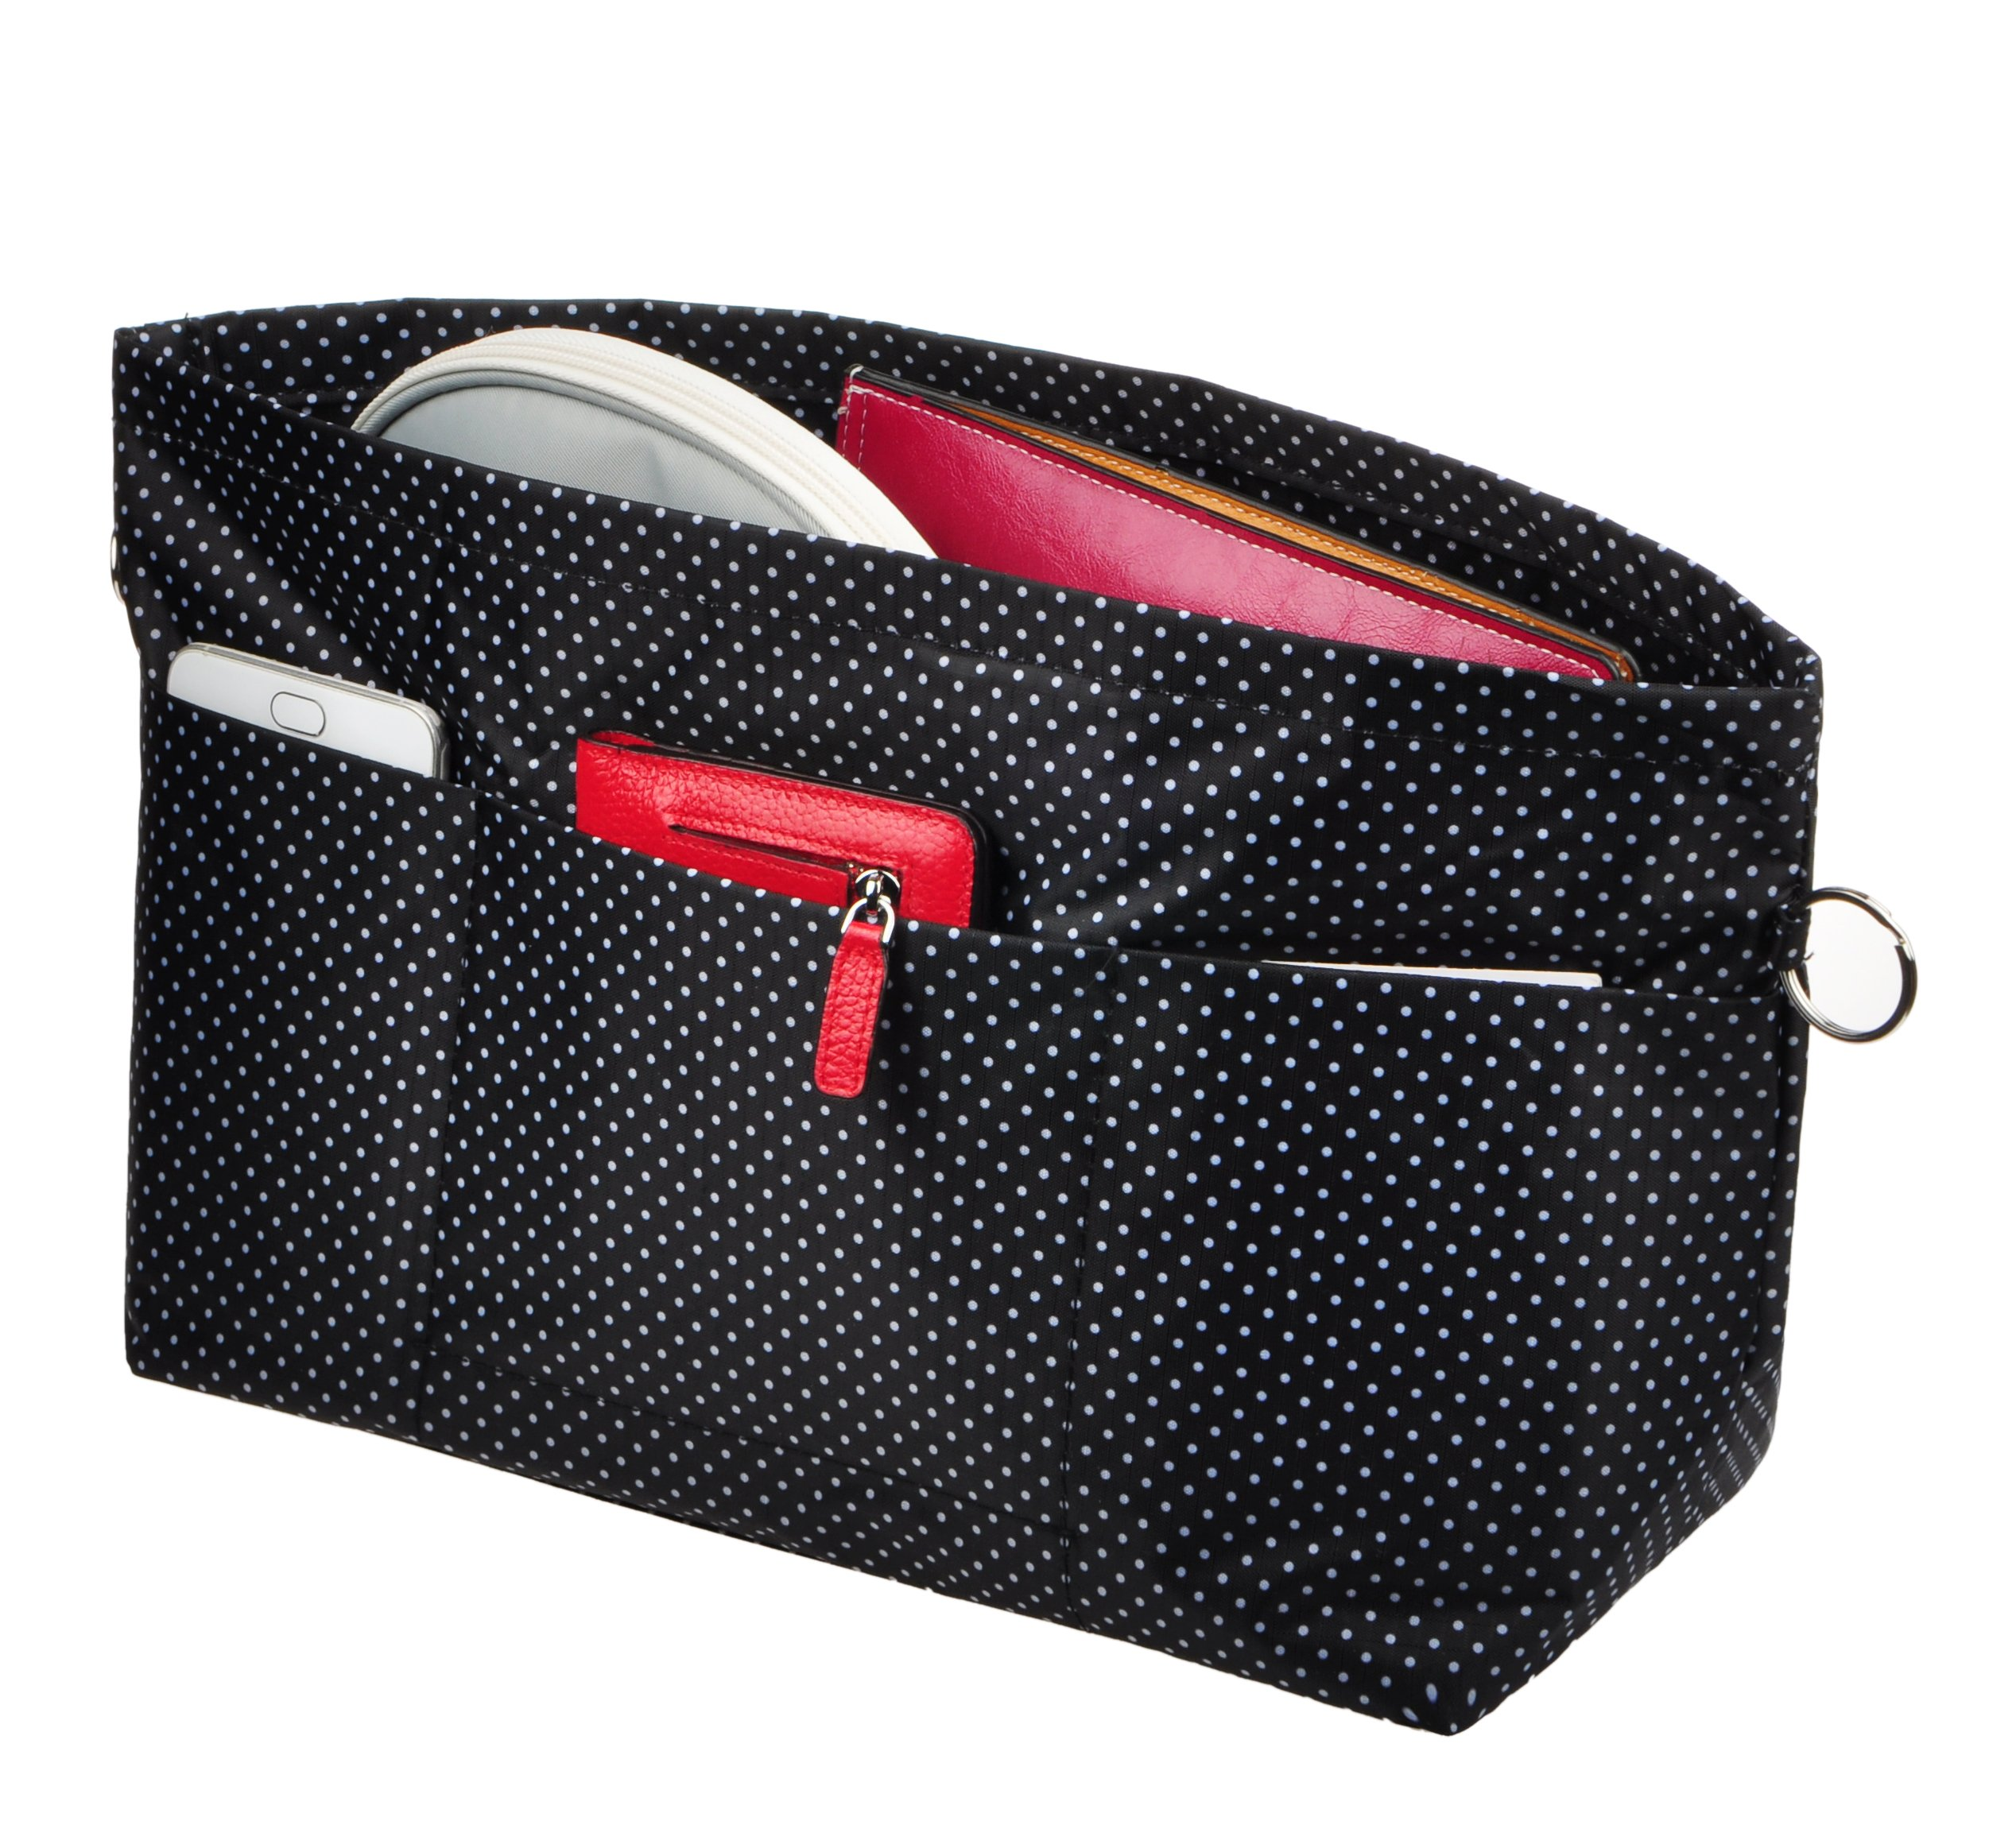 Vercord Handbag Purse Tote Pocketbook Organizer Insert Zipper Closure 11 Pockets, Black Dots M